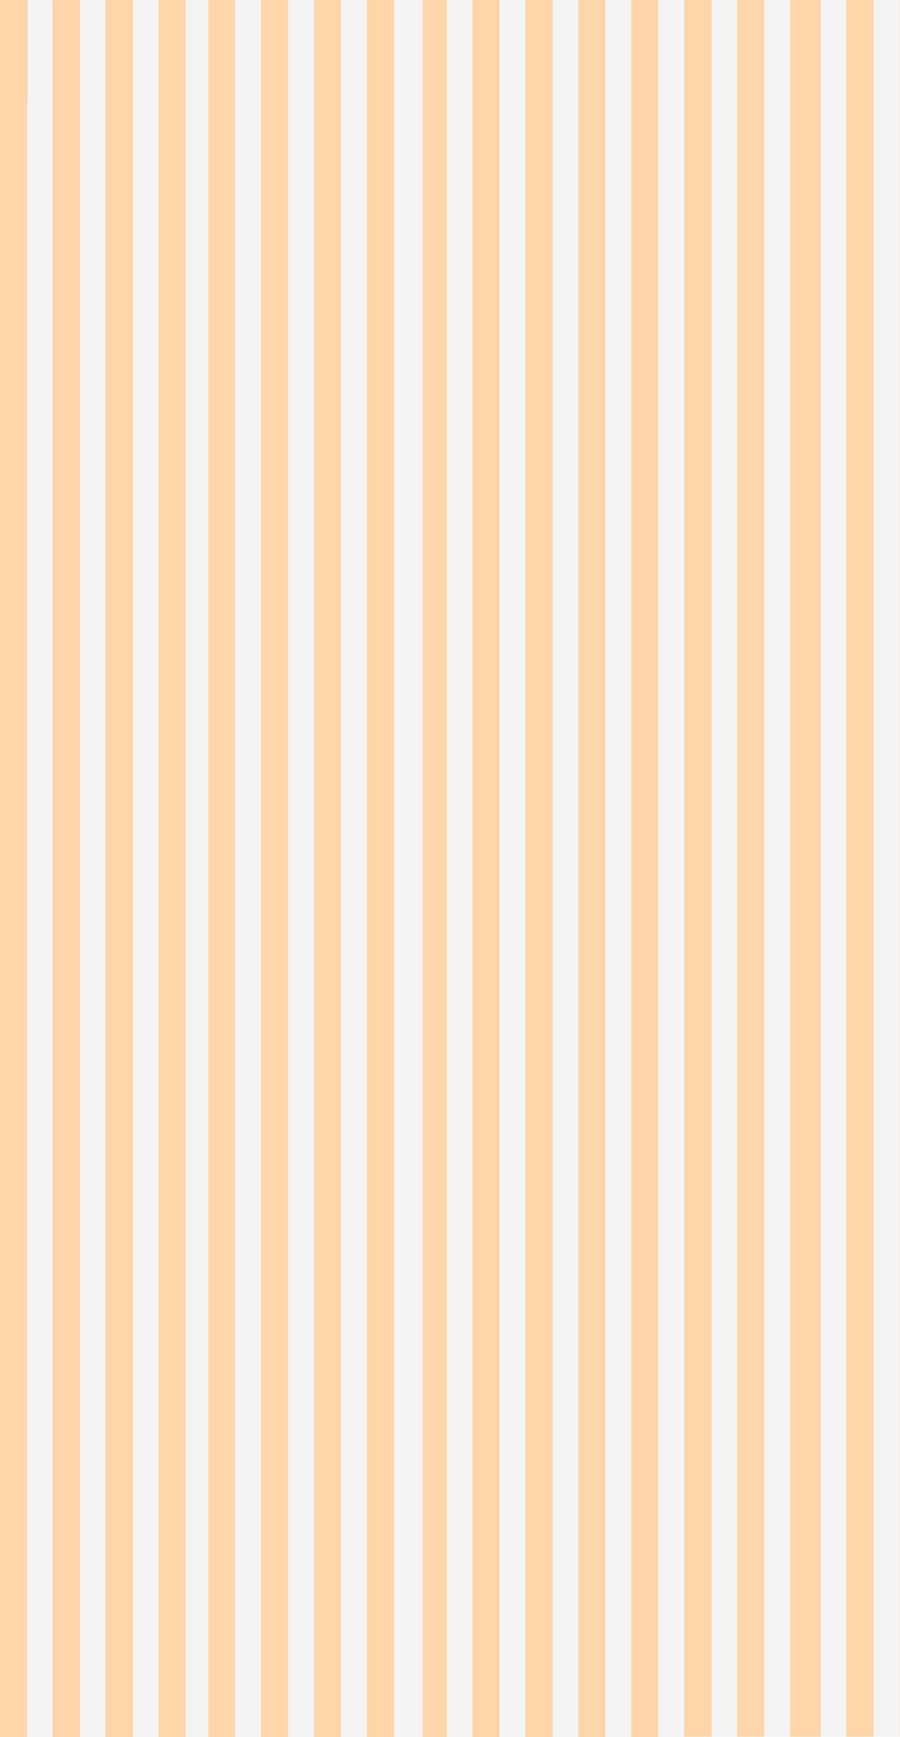 4: Pastel Orange Custom Box Background by Bgs-and-banners on DeviantArt for Background Pattern Tumblr Orange  83fiz